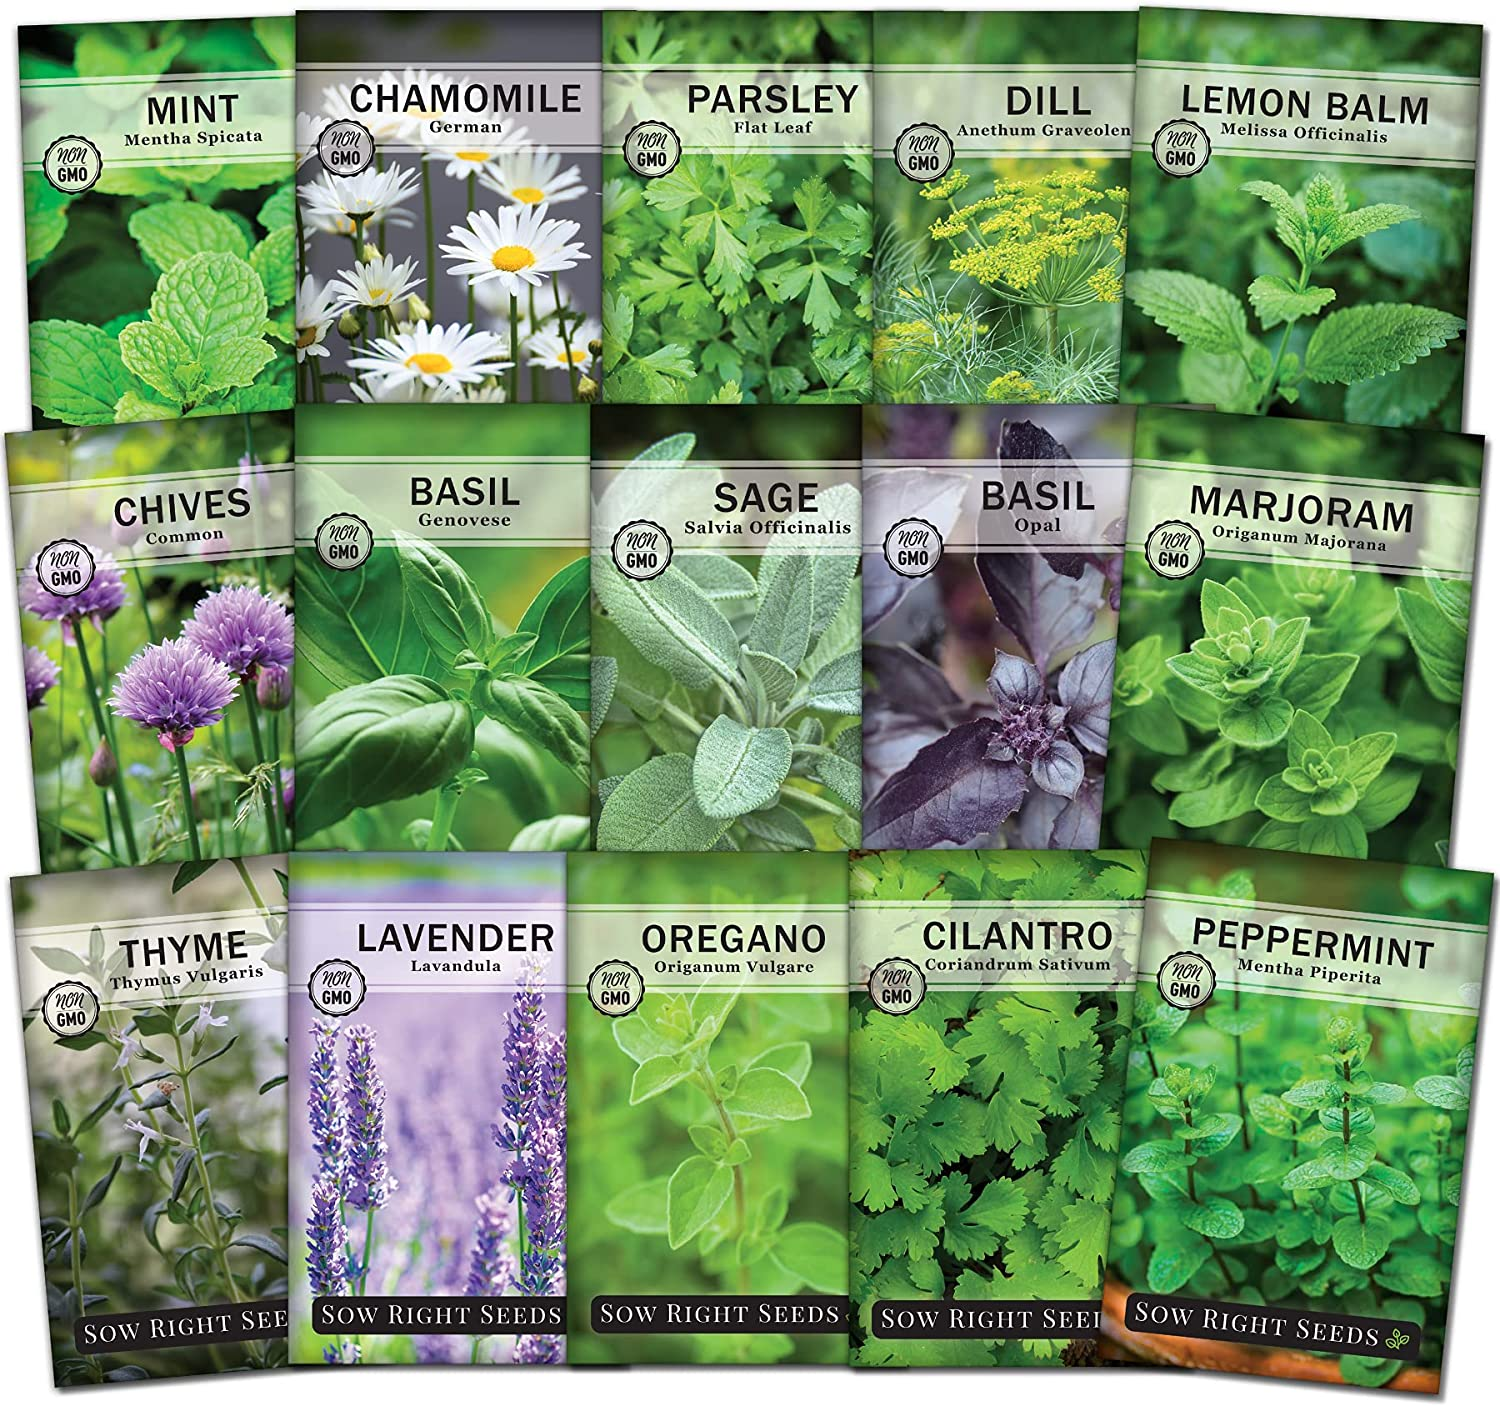 Sow Right Seeds - 15 Herb Garden Seed Collection - 15 Essential Herbs for Cooking; Non-GMO Heirloom Seeds; Full Instructions for Planting an Easy to Grow Kitchen Garden, Indoor or Outdoor; Great Gift…